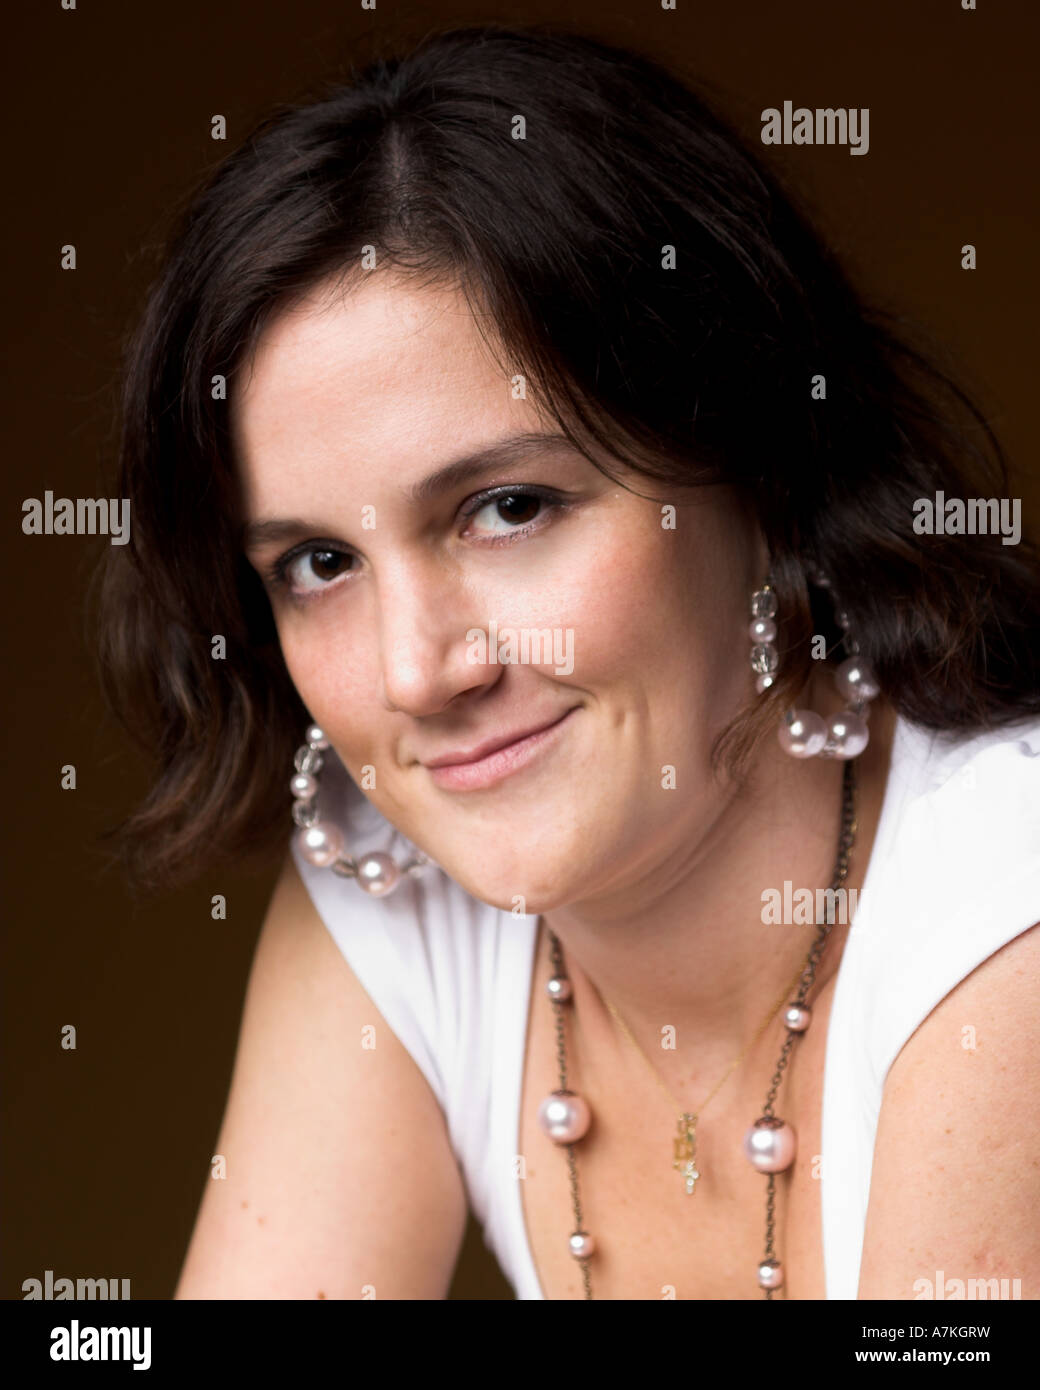 Studio indoor portrait of young woman on brown background Stock Photo